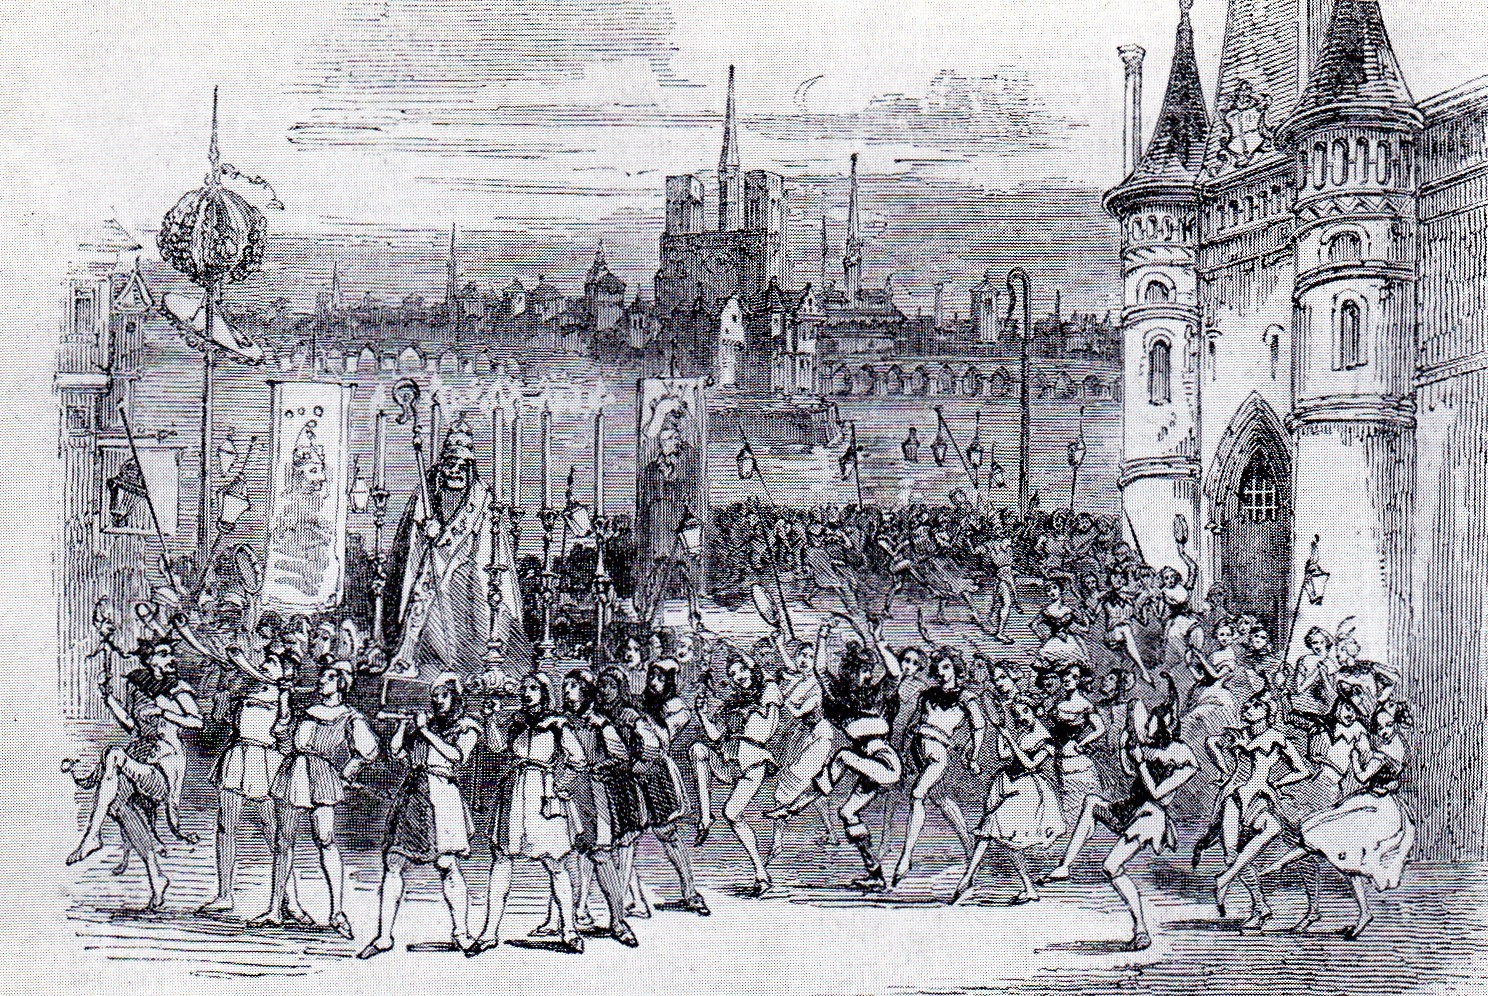 File:Esmeralda -Scene V -Procession of the Fools Hope -London -1844